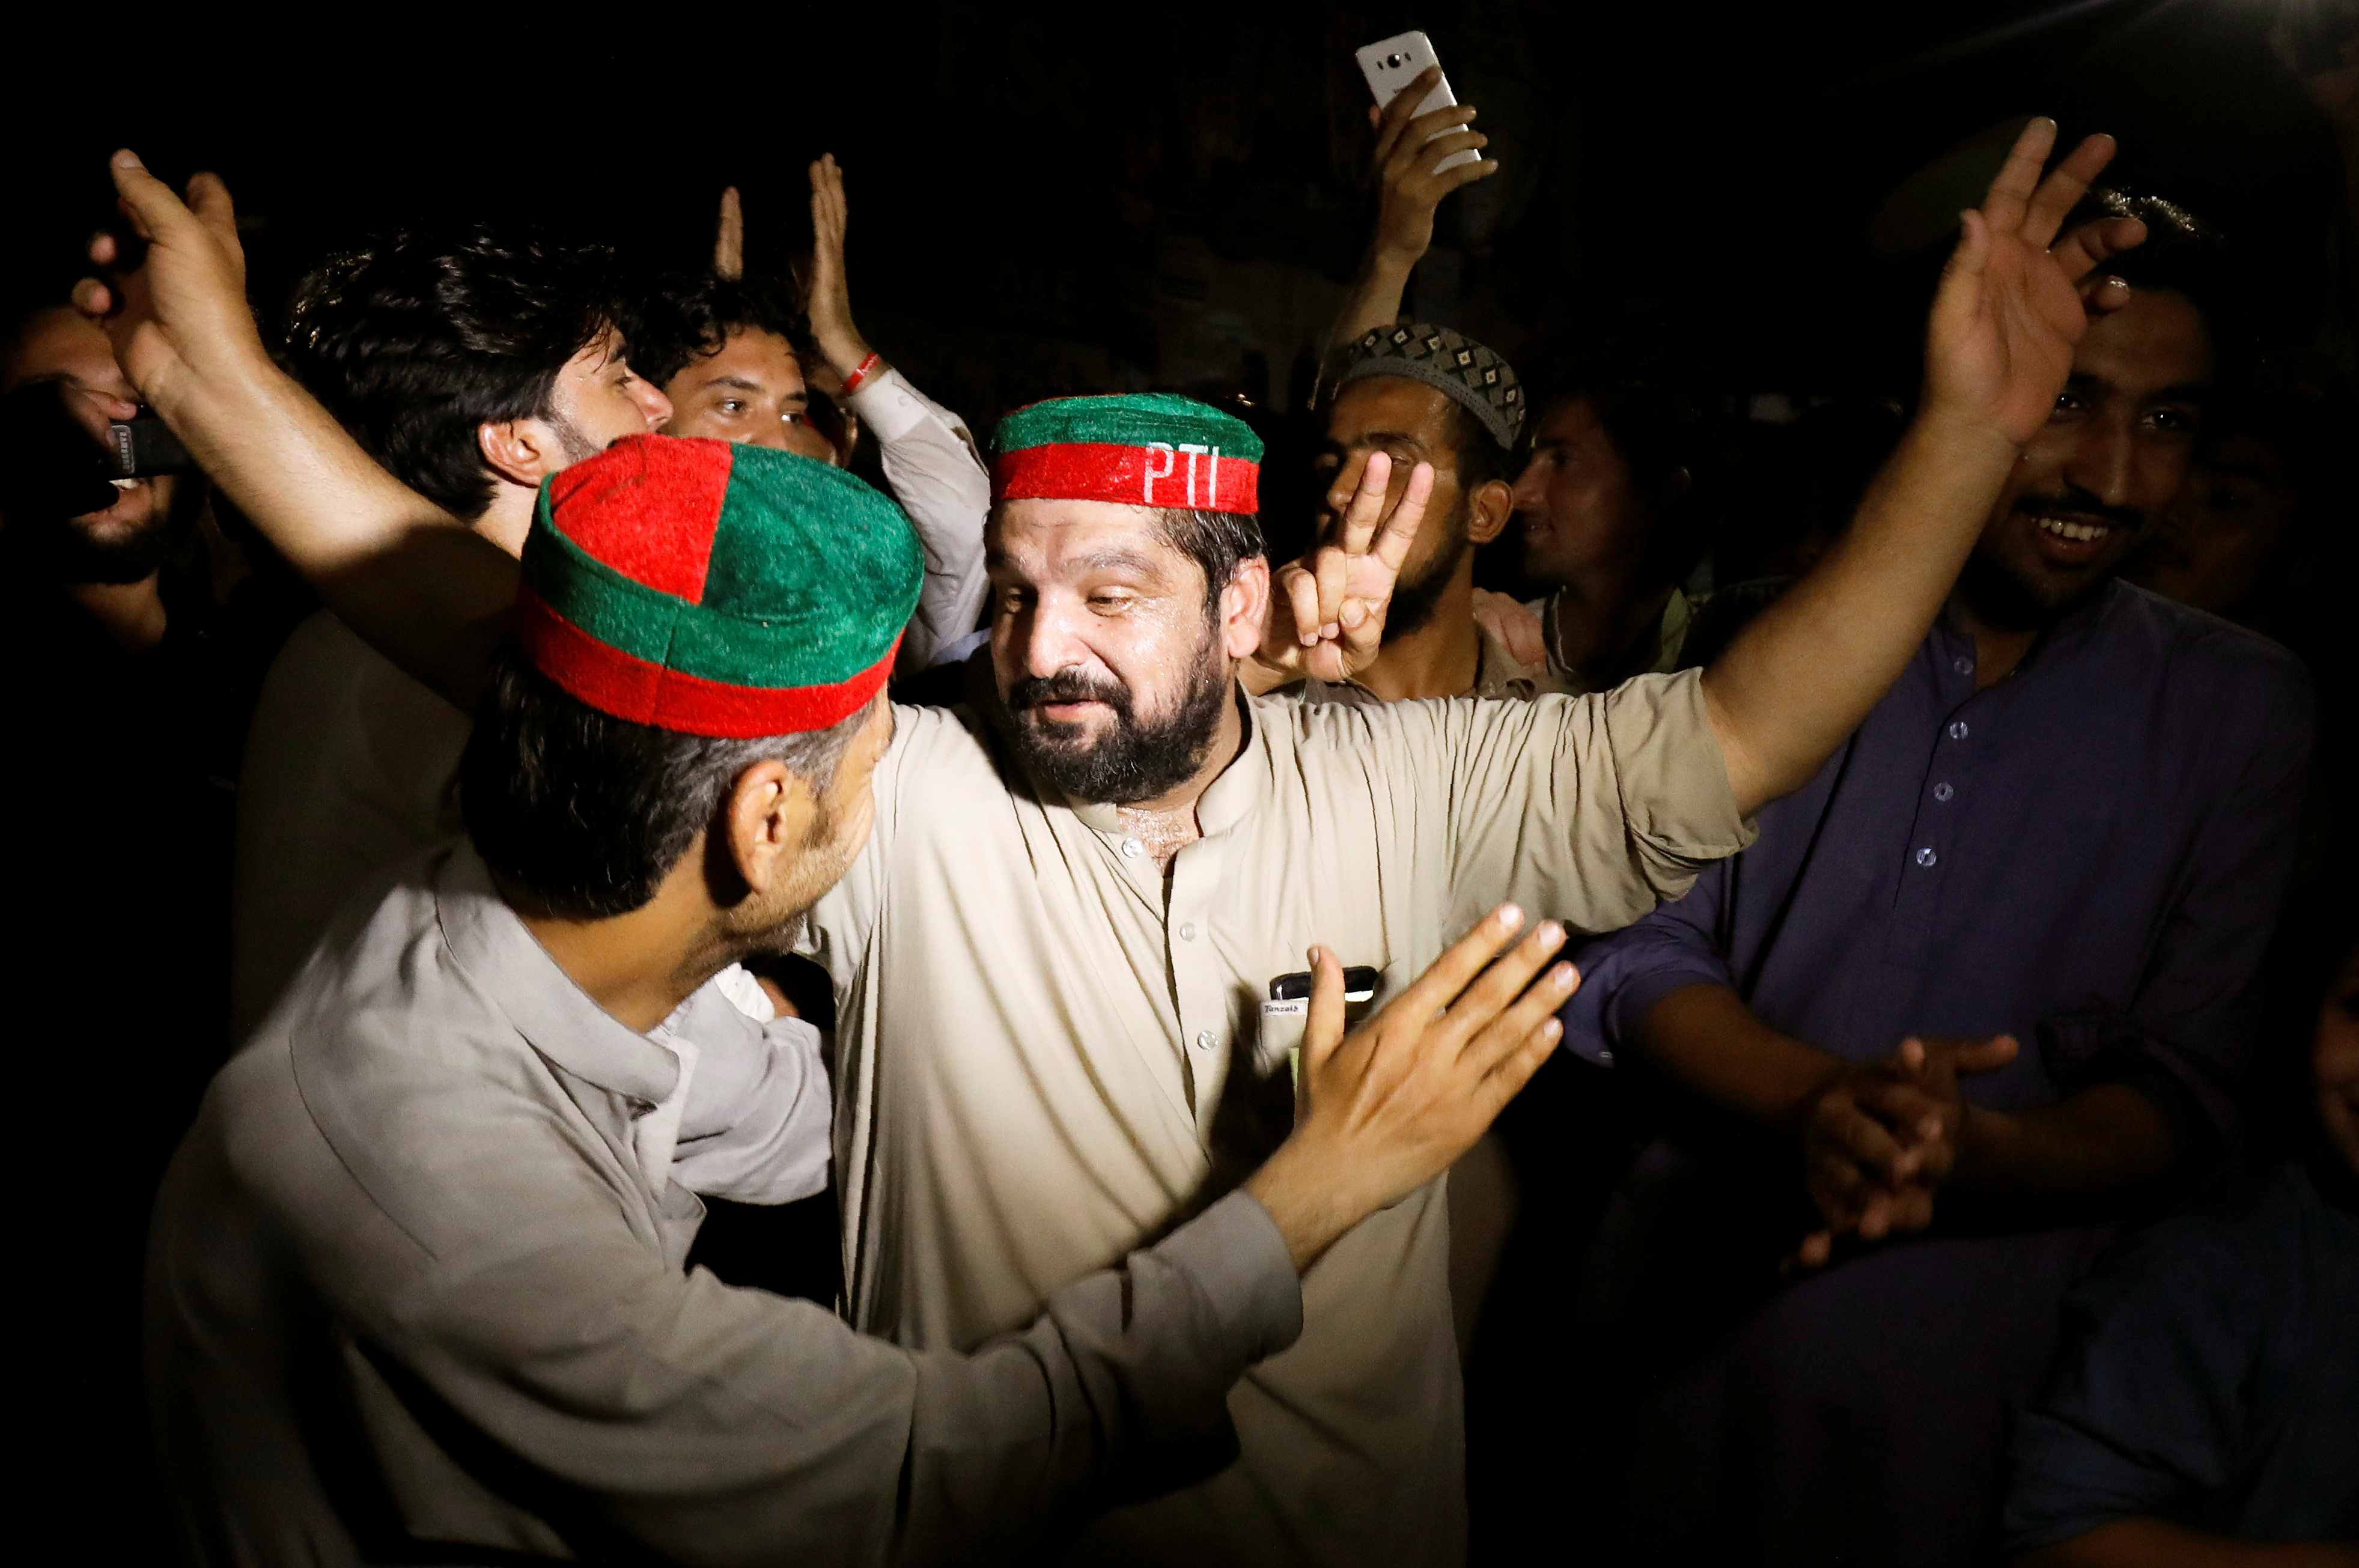 Supporters of Imran Khan, chairman of Pakistan Tehreek-i-Insaf (PTI) gesture to celebrate after Khan was elected as Prime Minister, in Peshawar, Pakistan, Aug. 17, 2018.